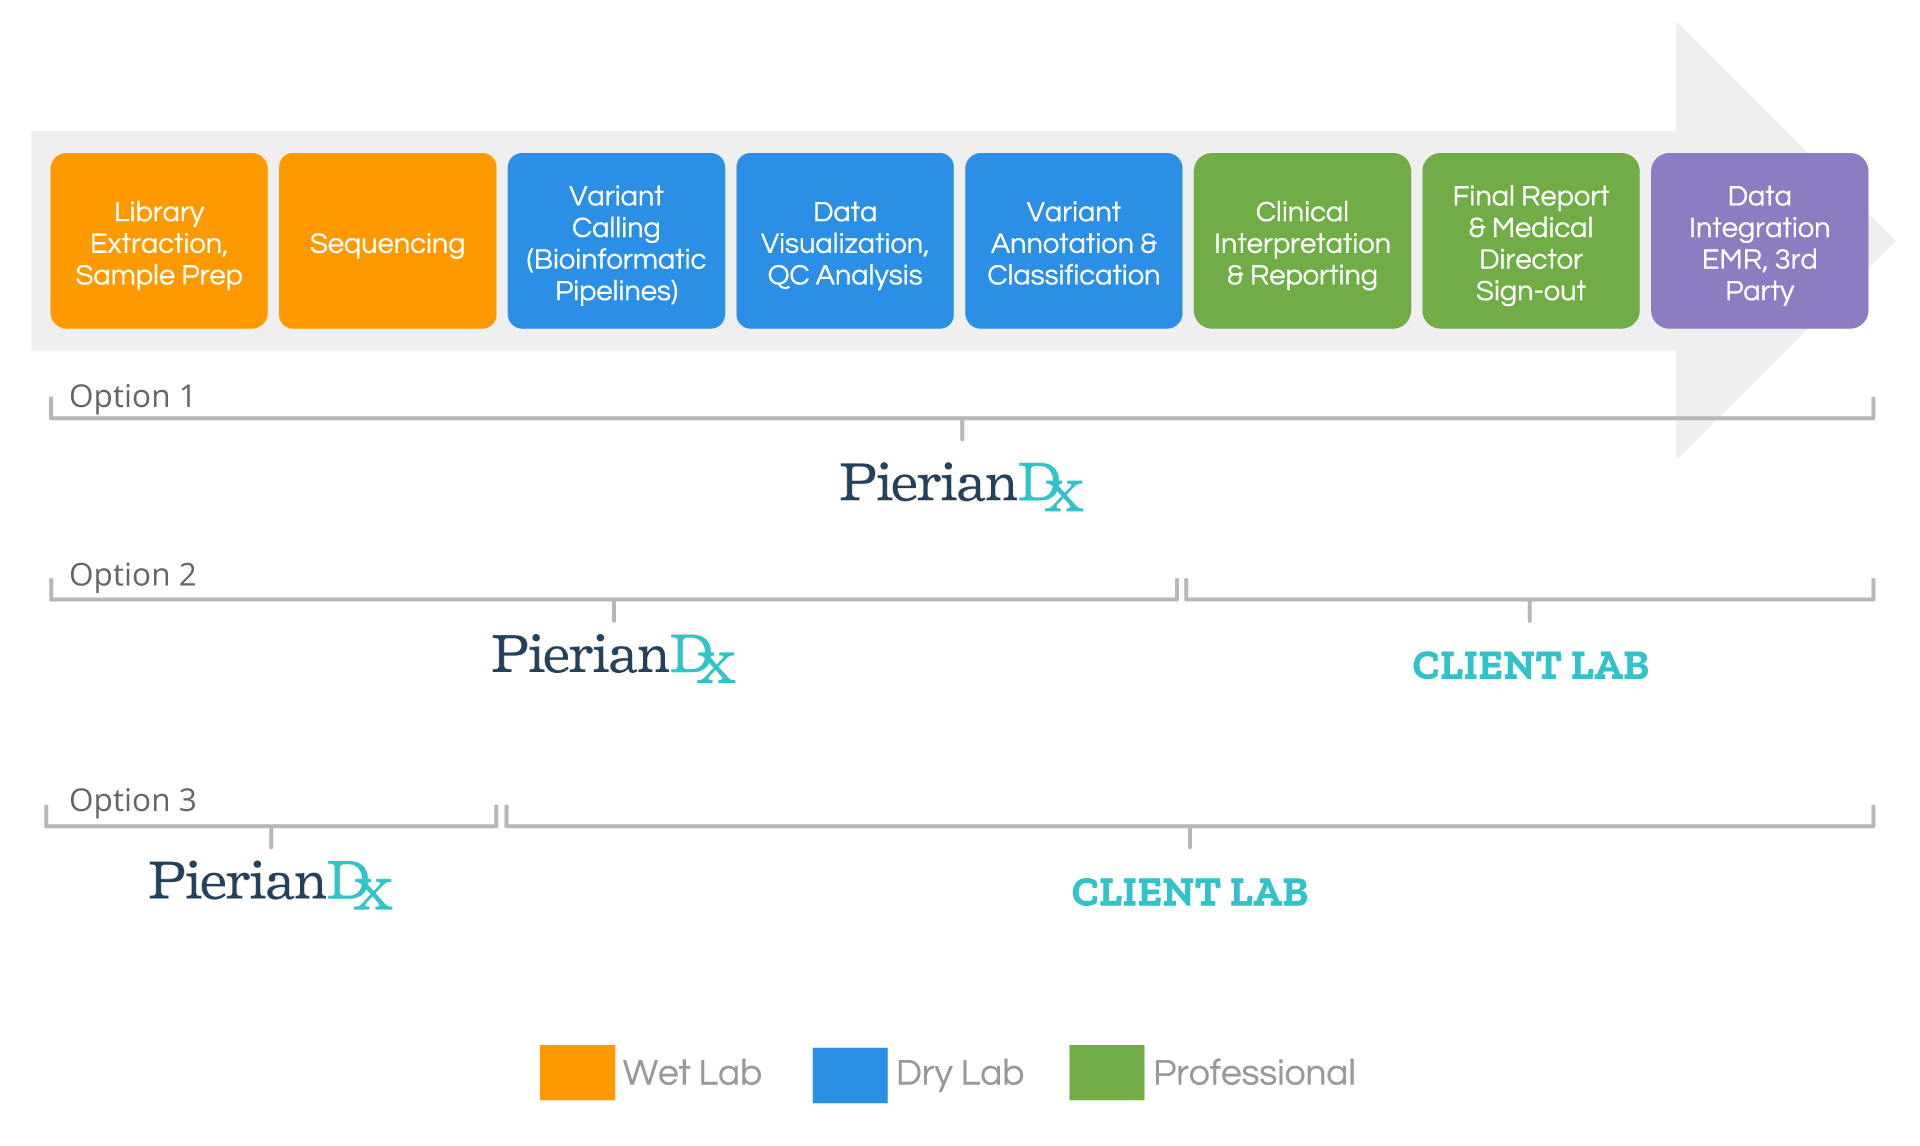 PierianDx Gateway Laboratory Services Options Under CAP Distributive Model for NGS Testing